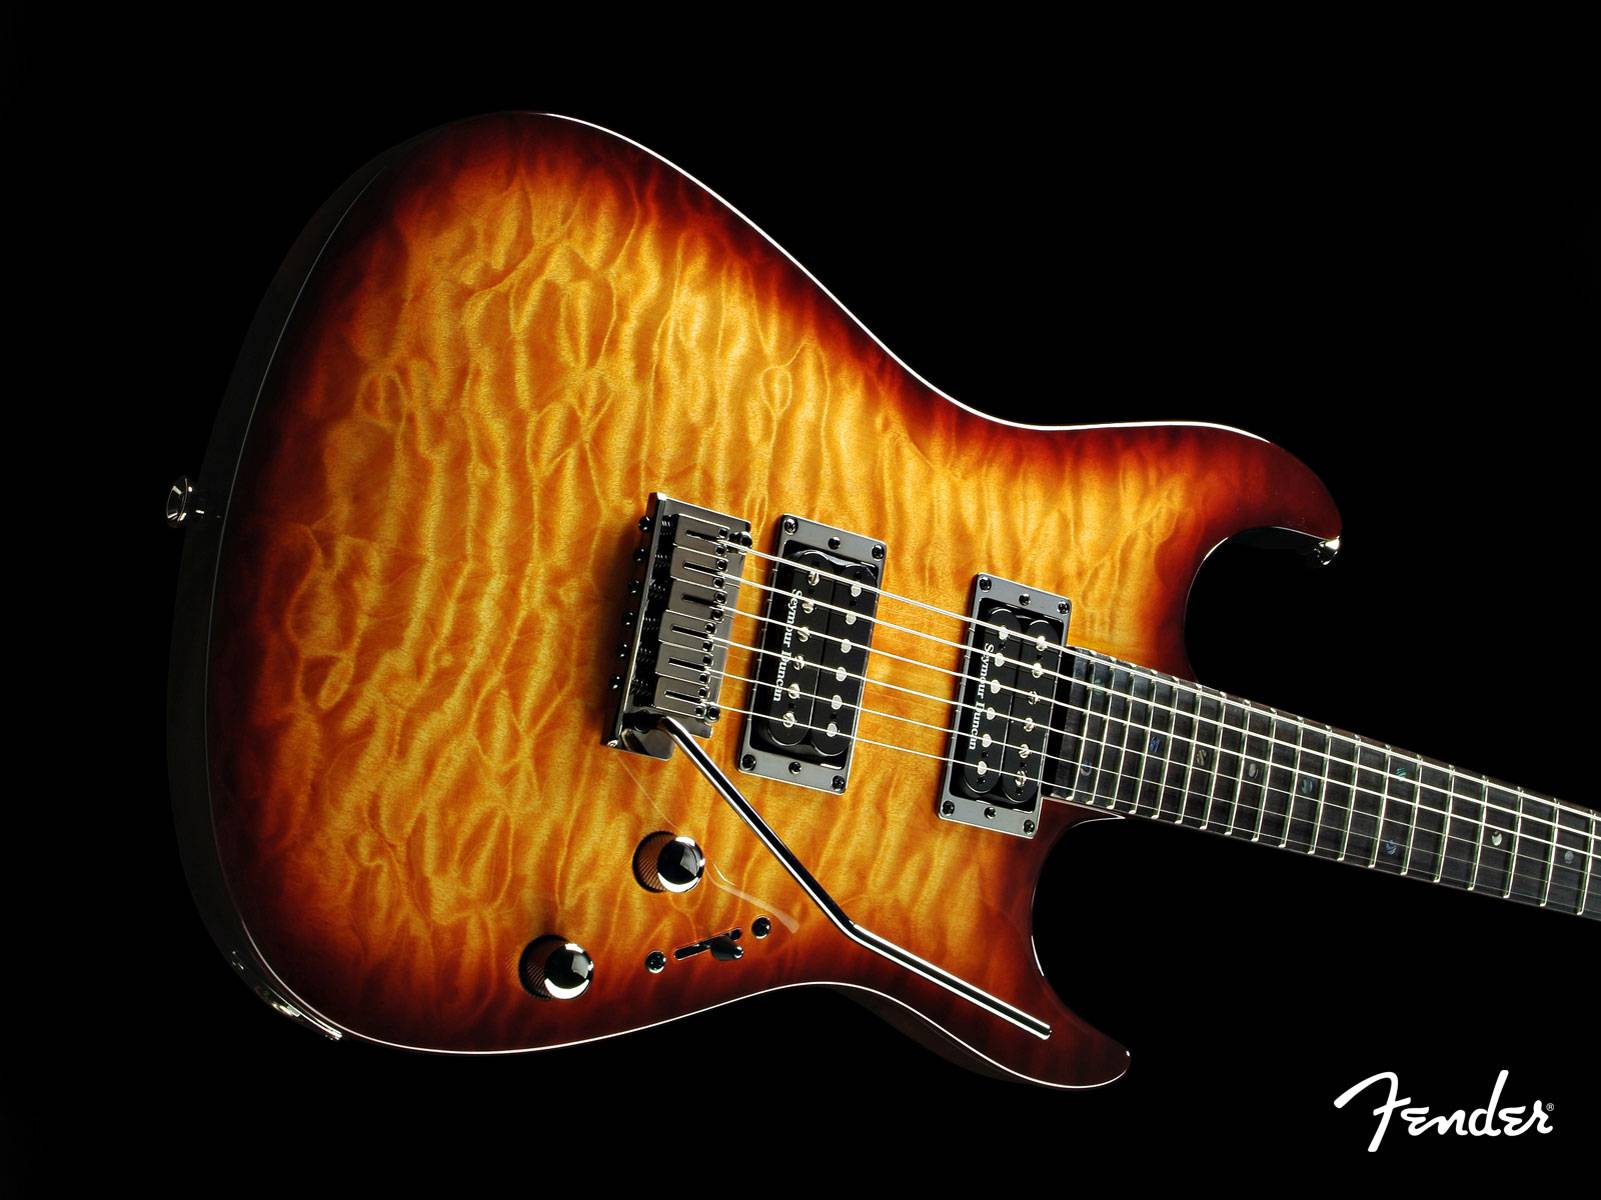 fender wallpaper   10138   High Quality and Resolution Wallpapers 1601x1200